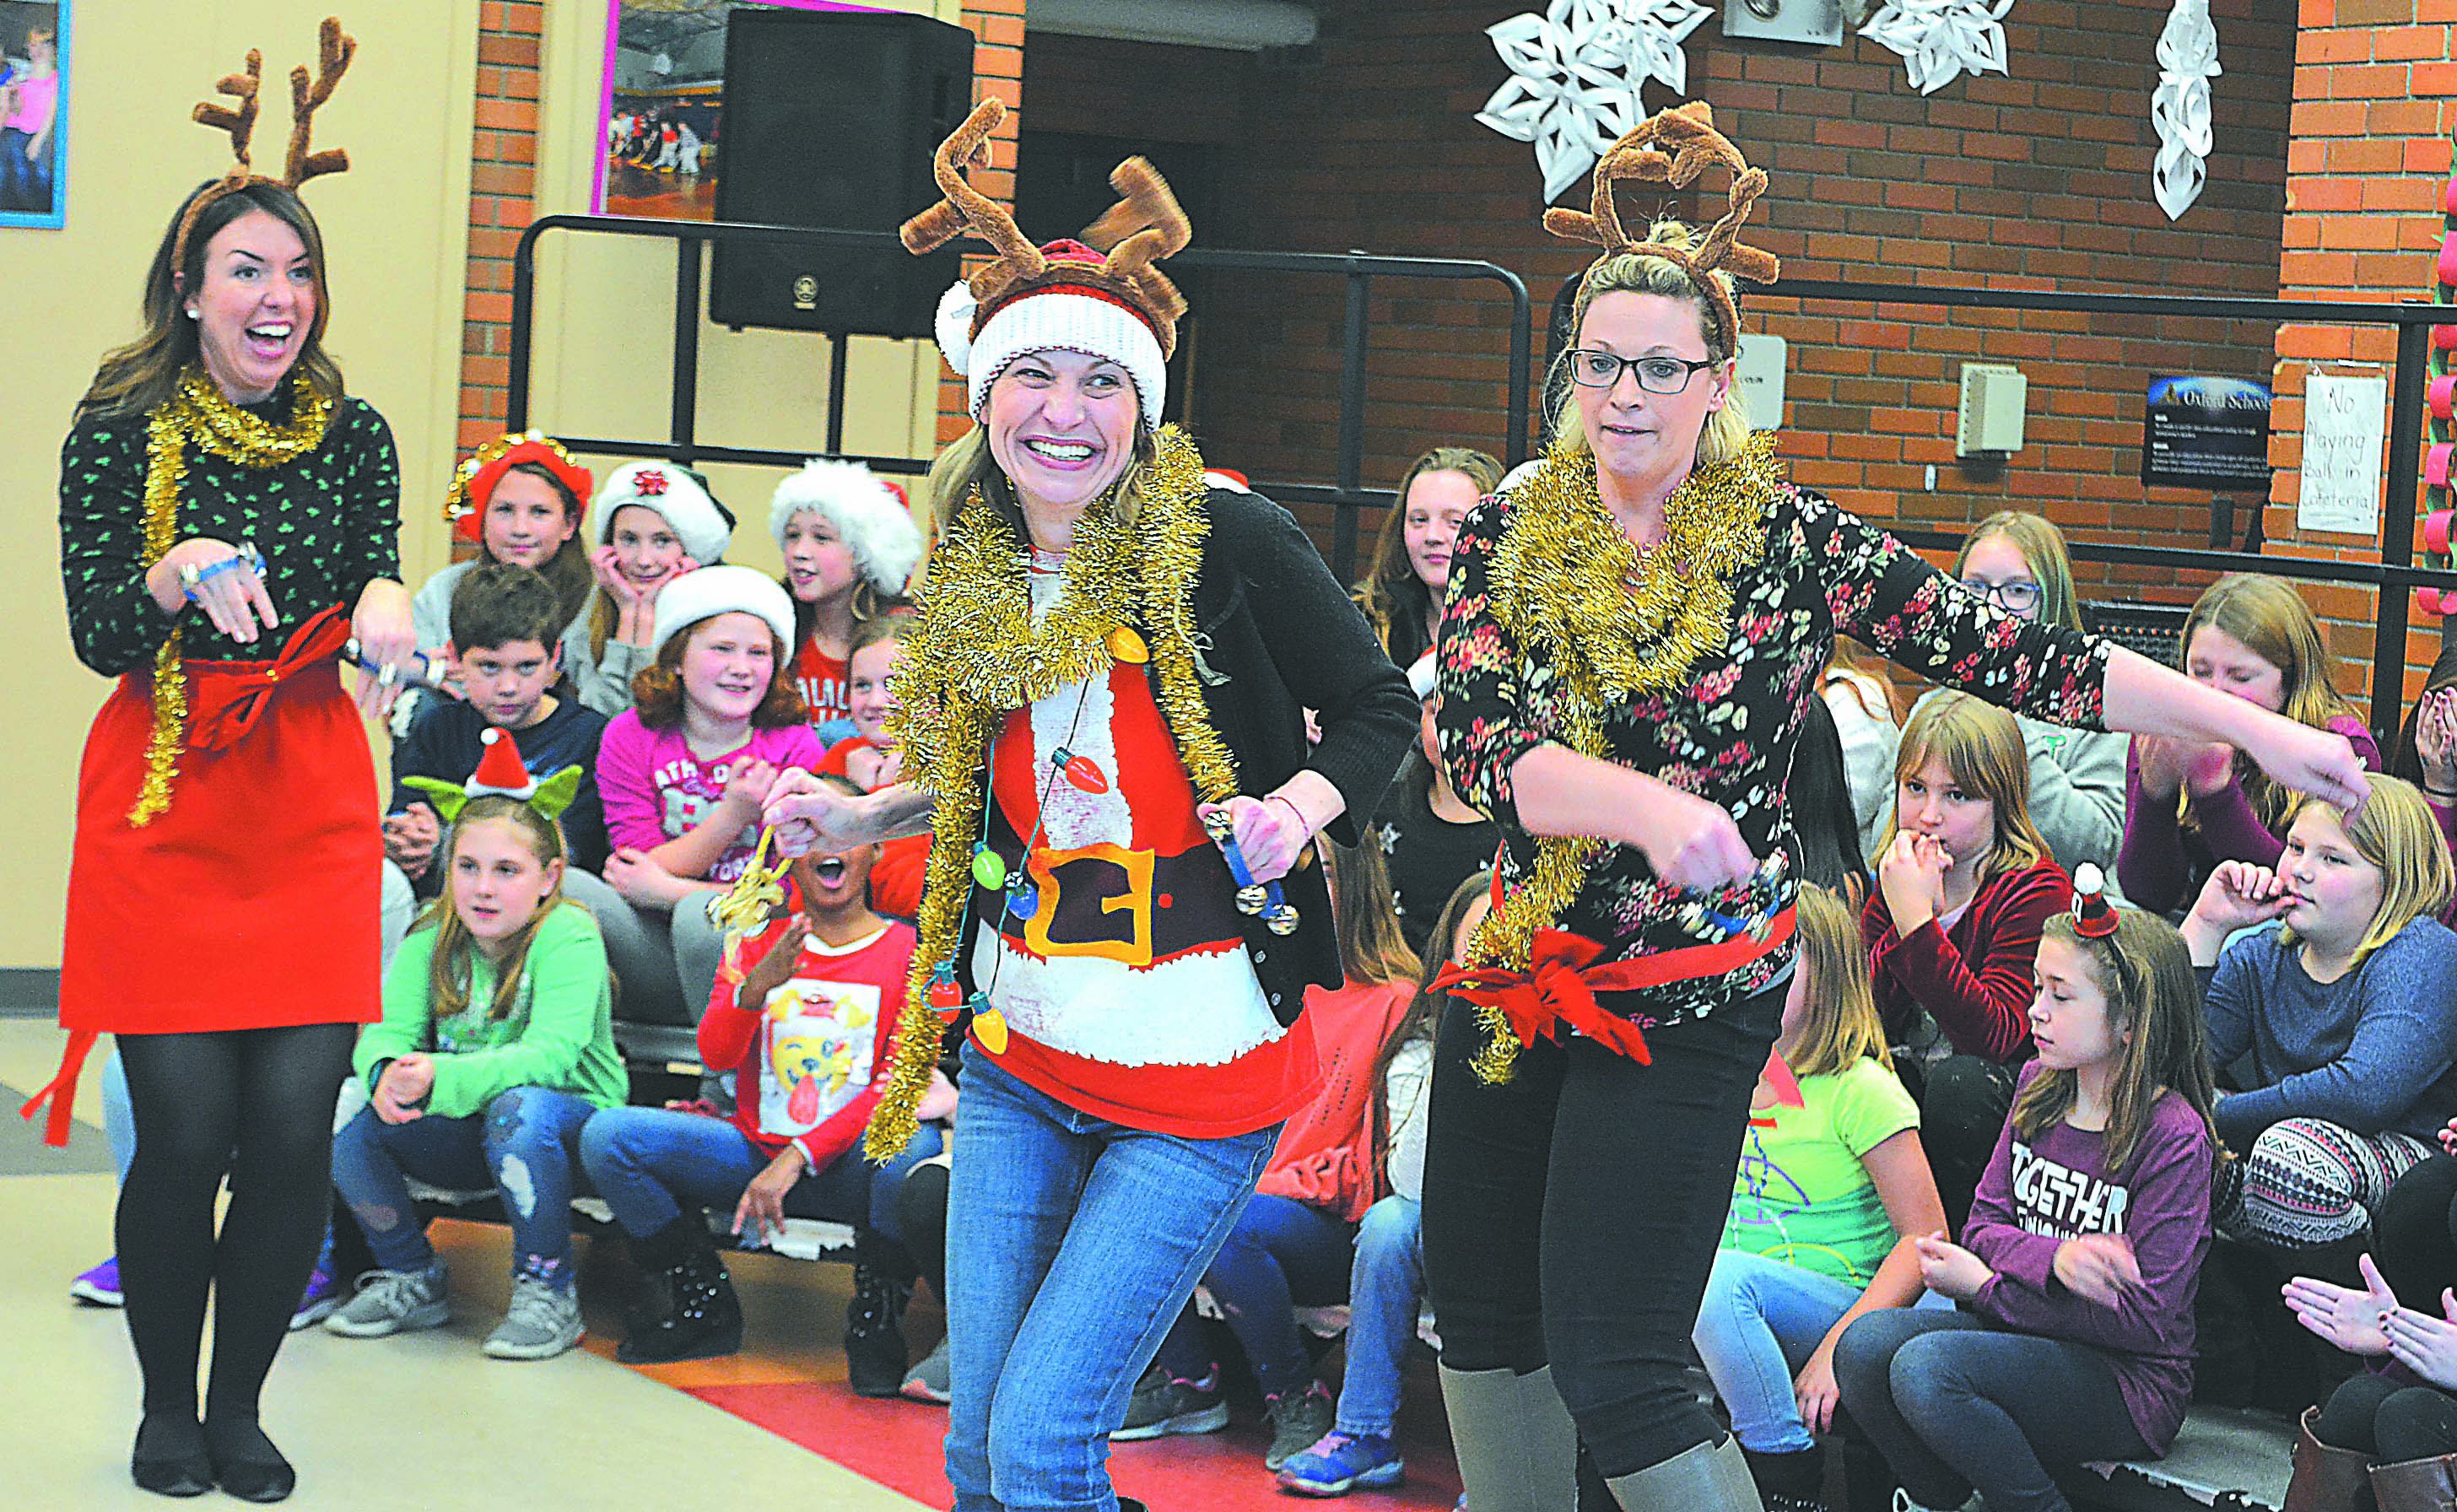 Teachers Alicia Daniels (from left), Jillian Jesmore and Rachel Hart show off their dance moves as reindeer who like to boogie down. Photo by C.J. Carnacchio.